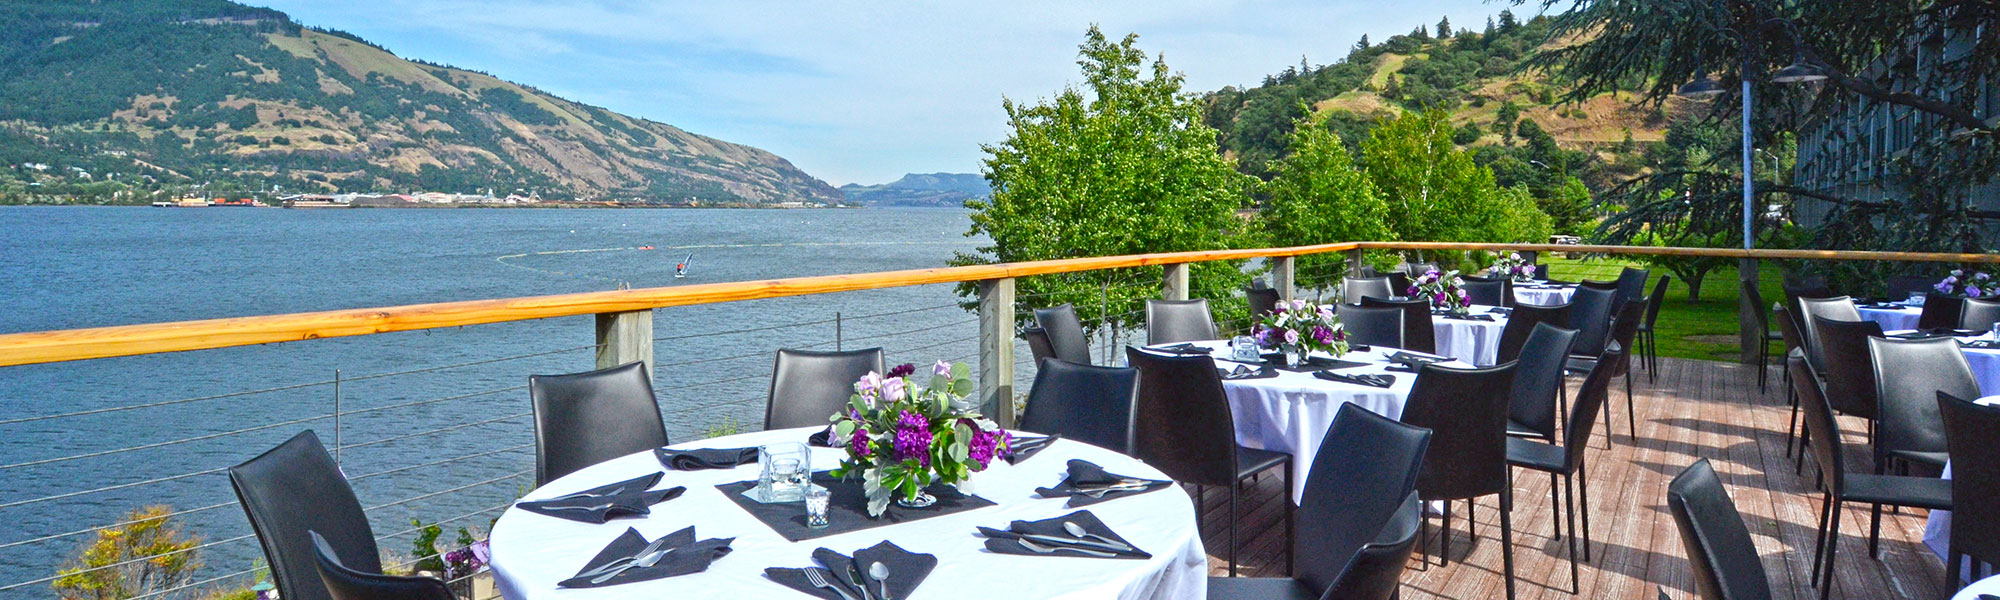 Summer wesddings at the Hood River Inn